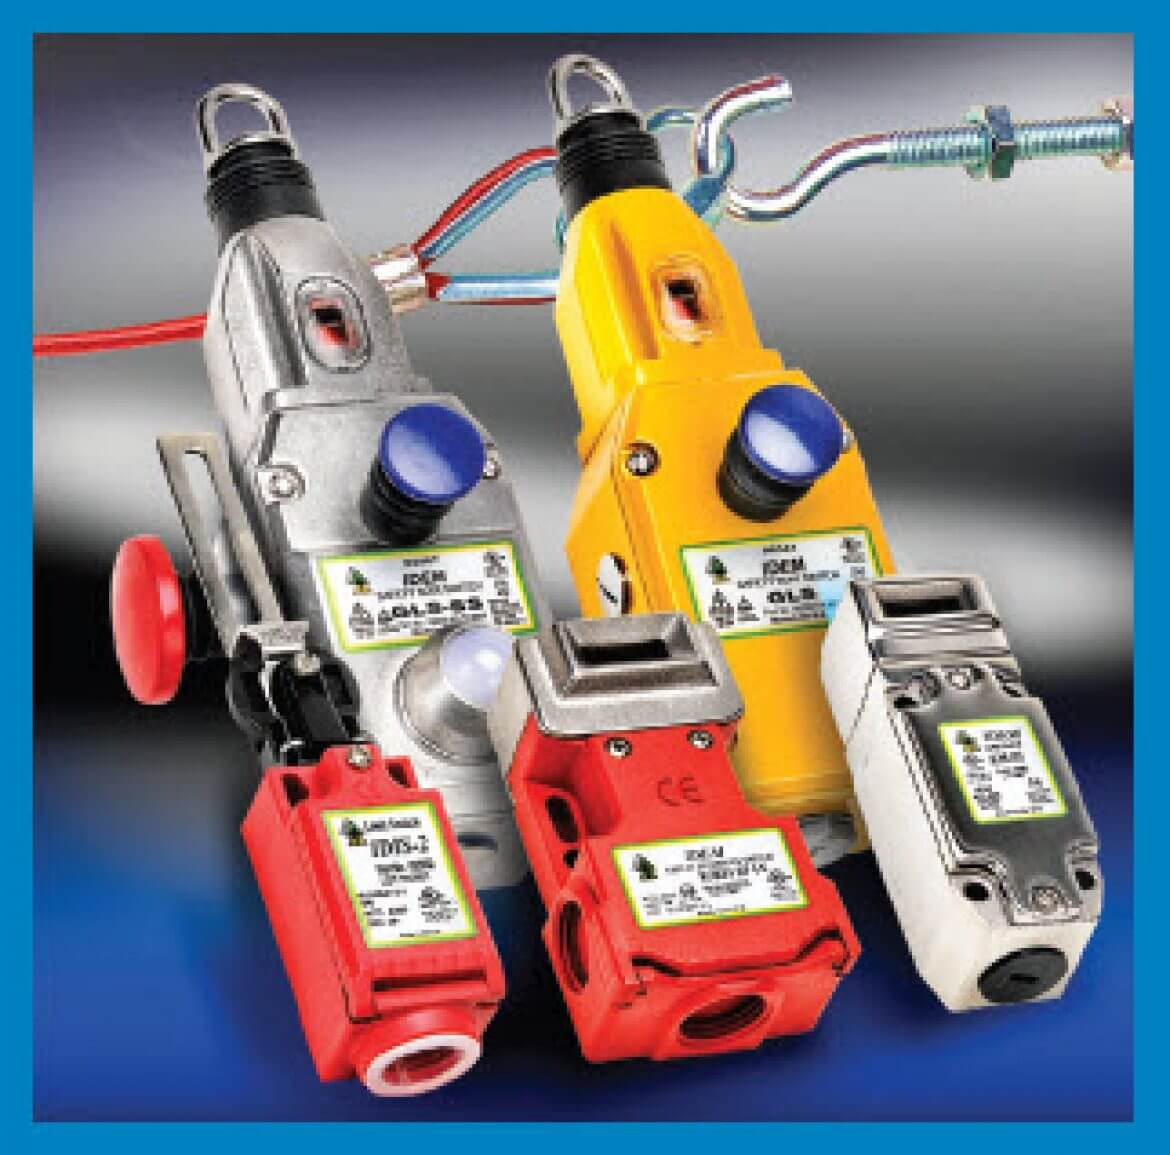 AutomationDirect Expands Interlock Safety Switch Offering